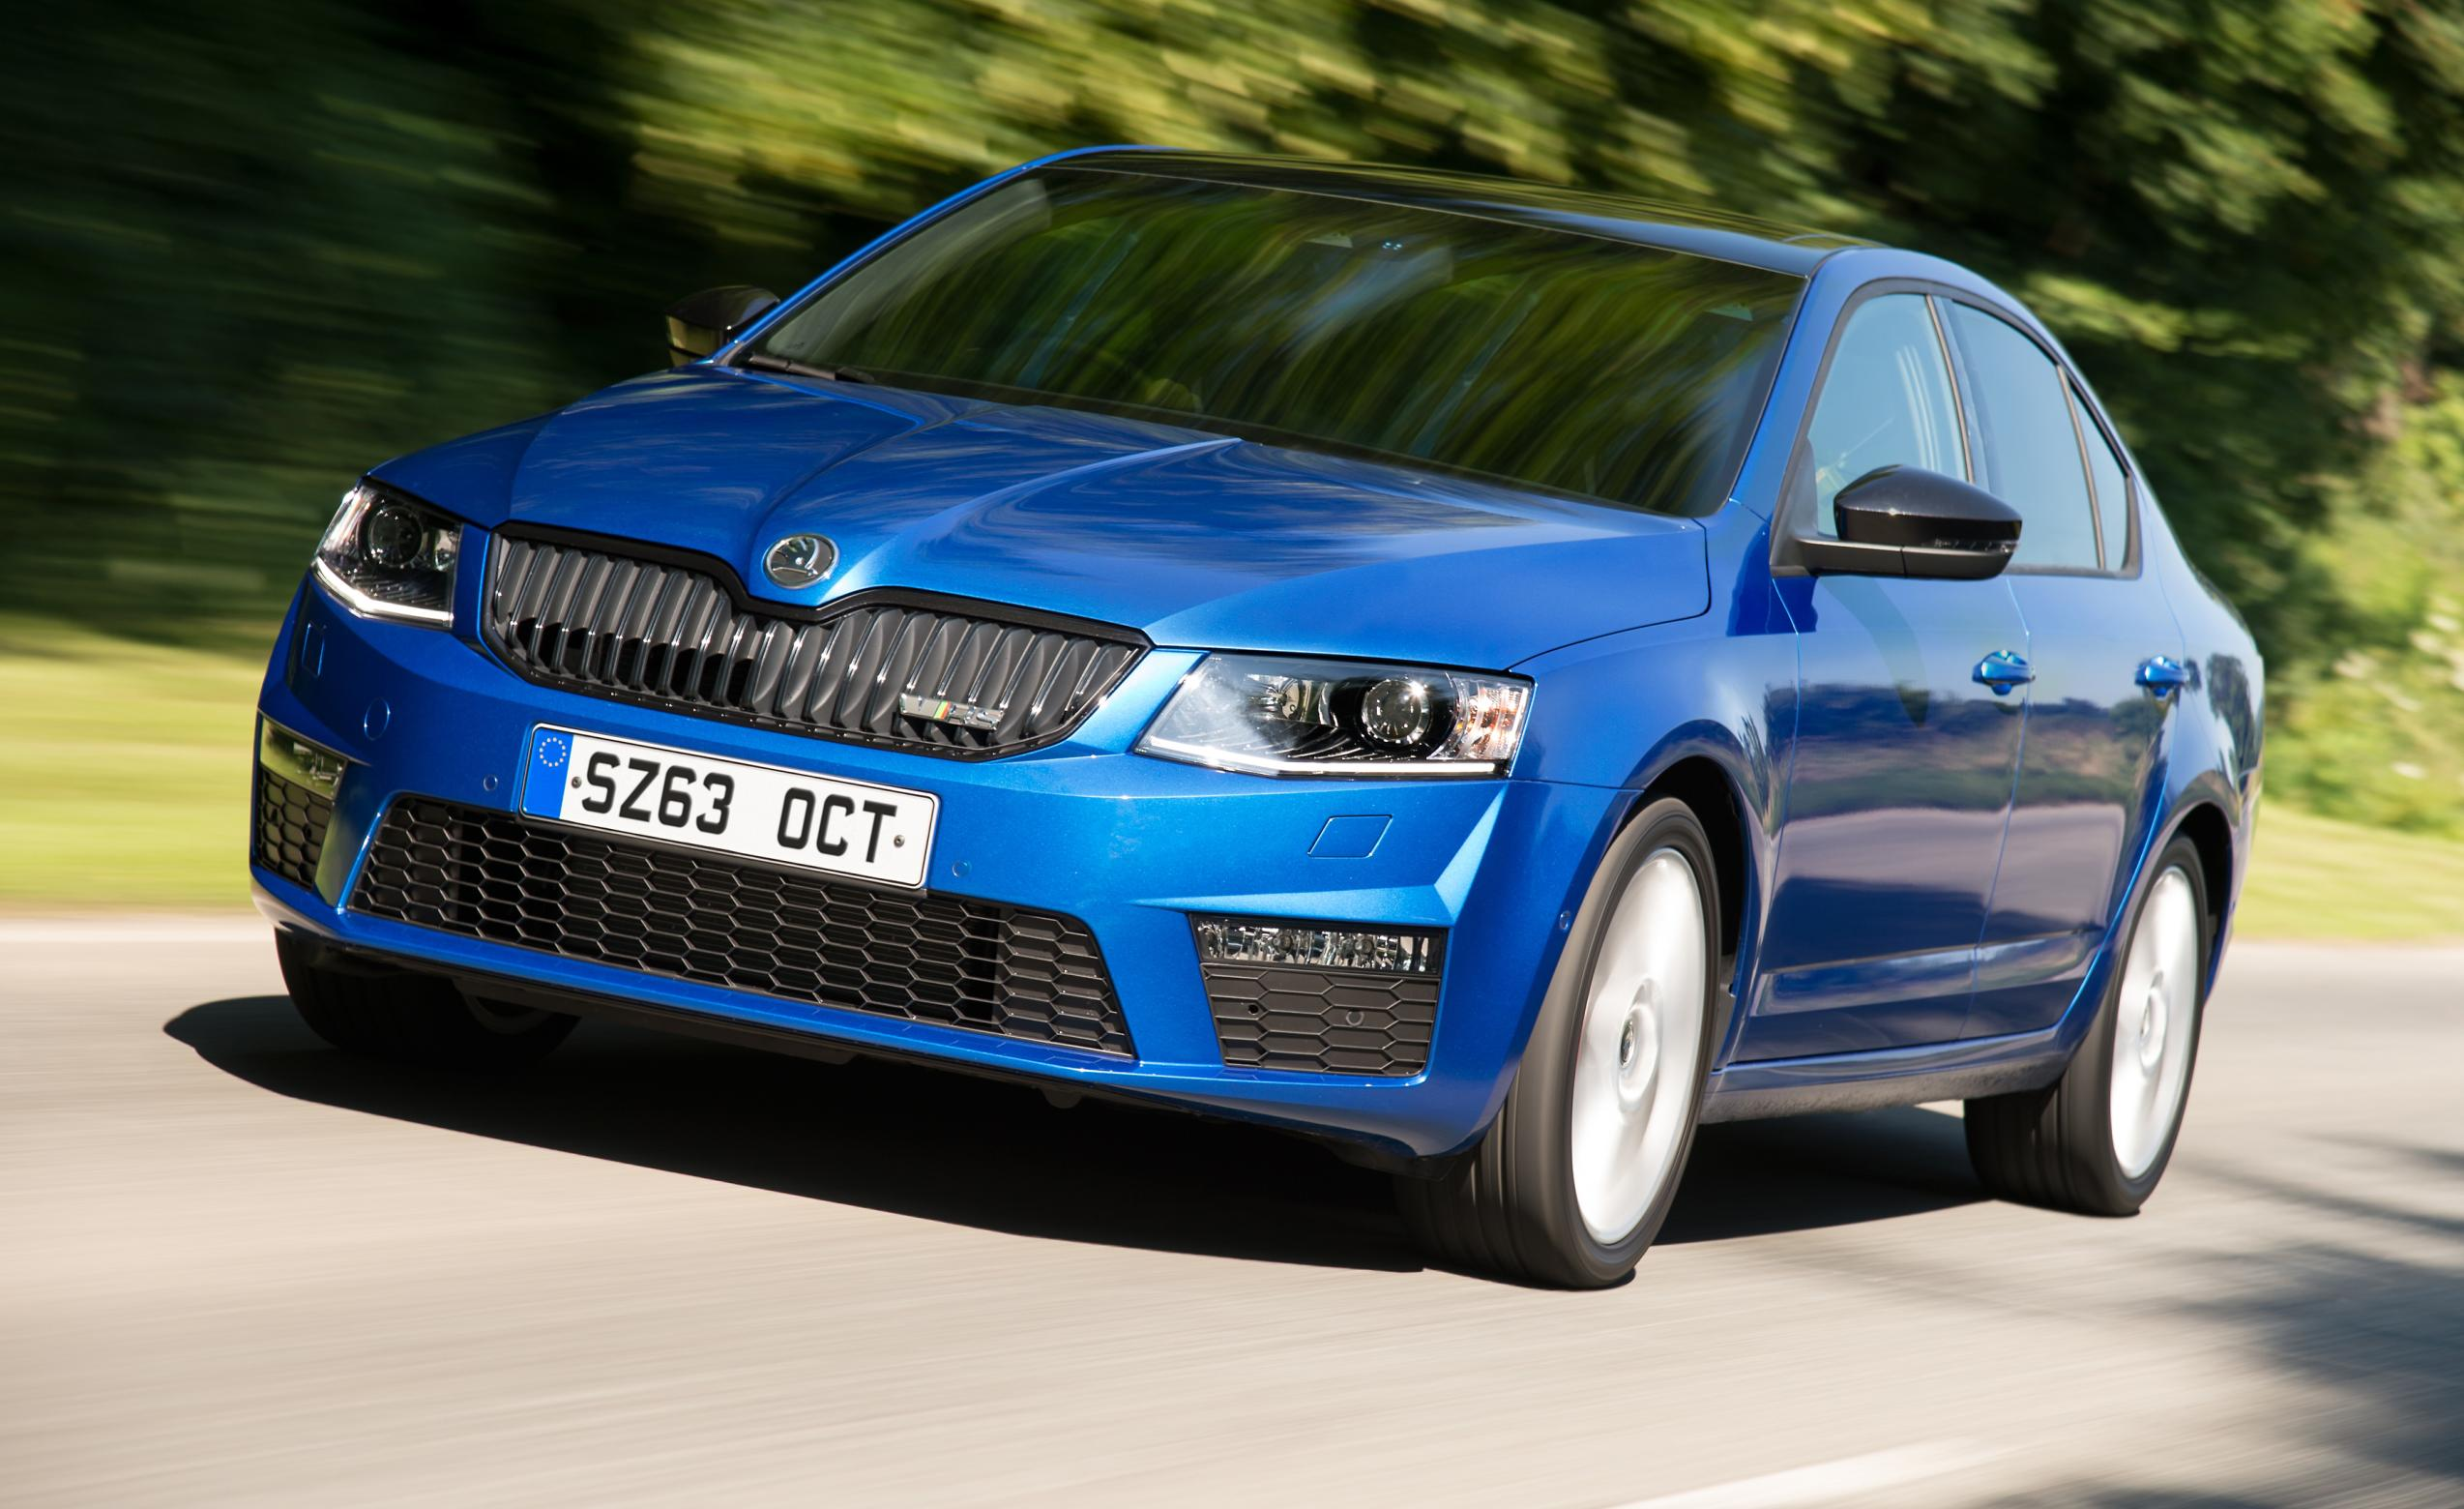 skoda octavia vrs india launch in august india car news. Black Bedroom Furniture Sets. Home Design Ideas